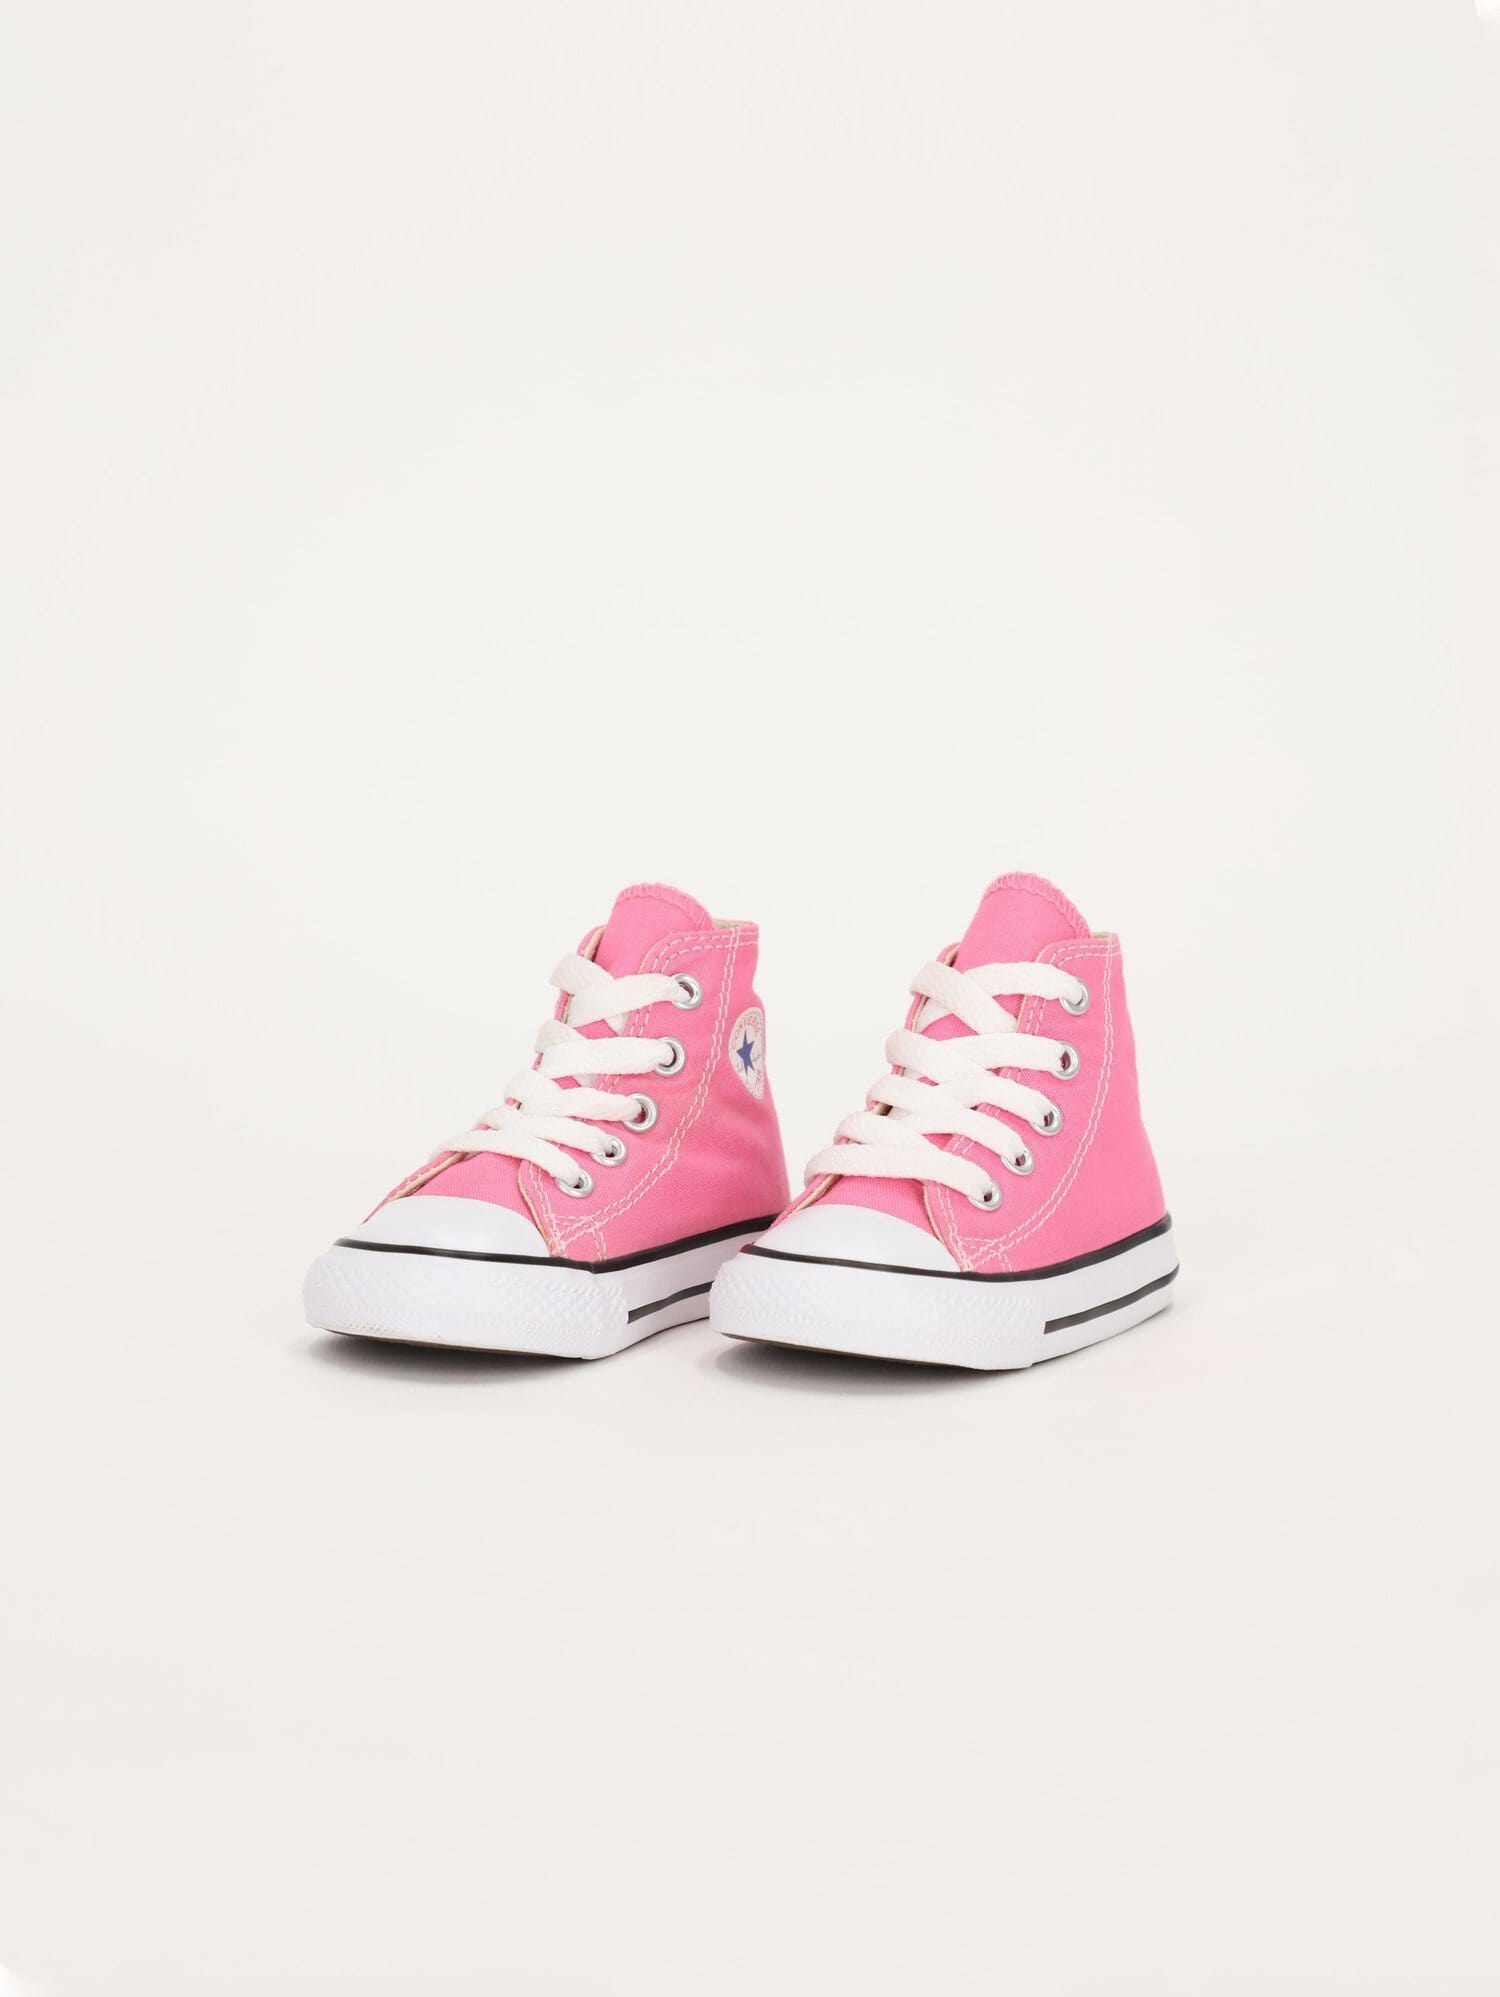 Converse Footwear Kids Chuck Taylor All Star High Top - 7j234